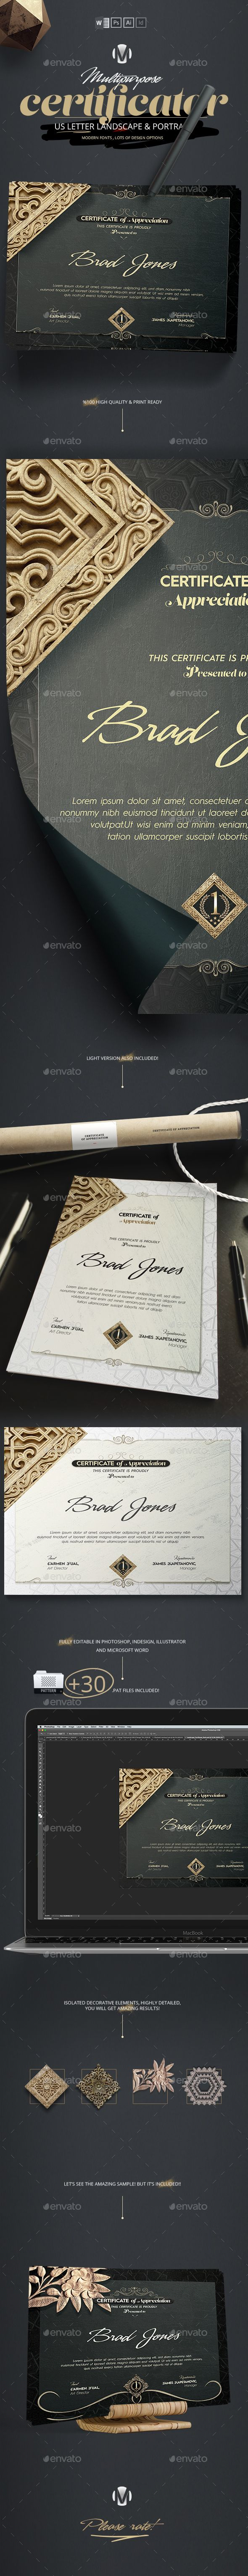 Certificator certificate certificate design and template quickly create a professional looking certificate of appreciation certificate for any company using this yelopaper Gallery